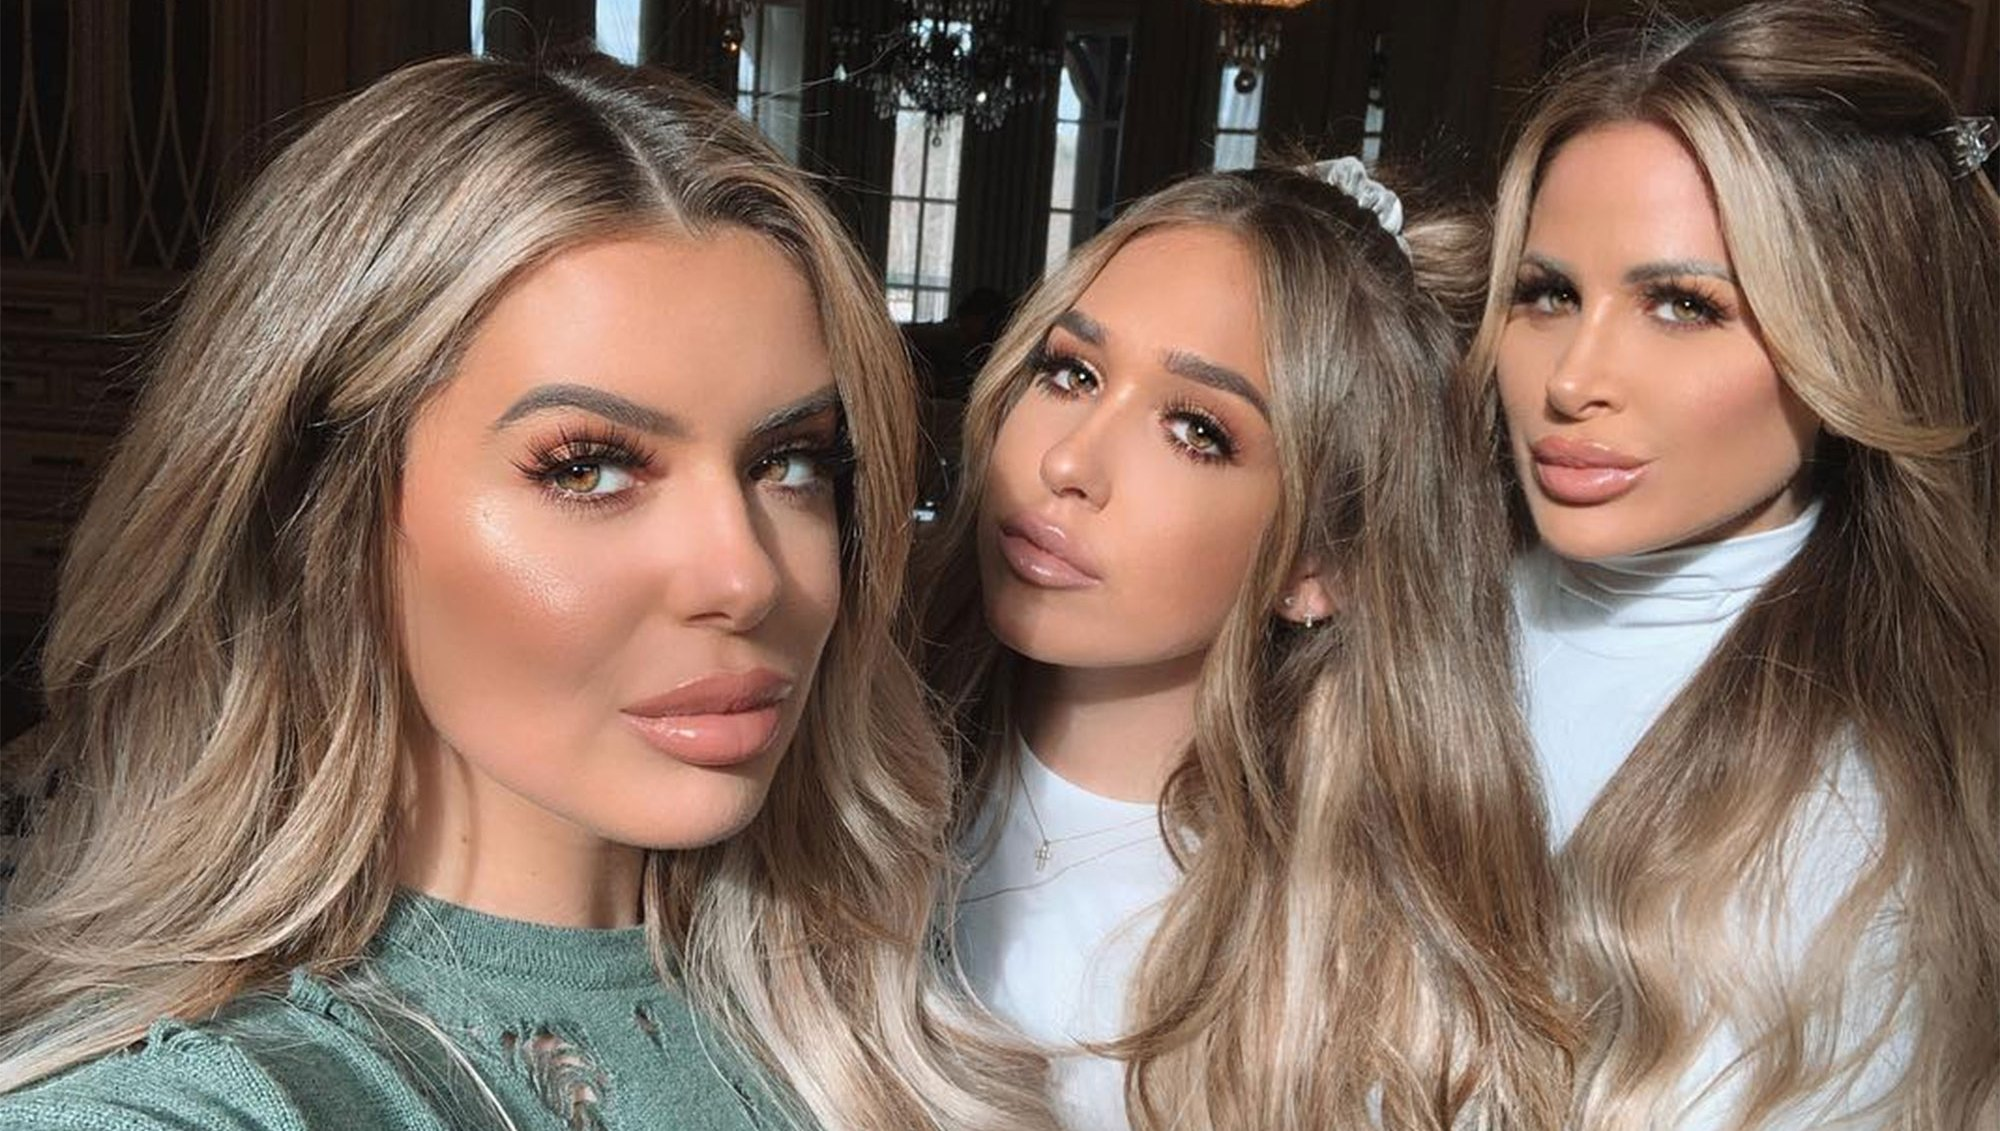 Brielle Biermann Jokes About '3 for 1 Special' at Plastic Surgeon With Mom Kim Zolciak and Sister Ariana